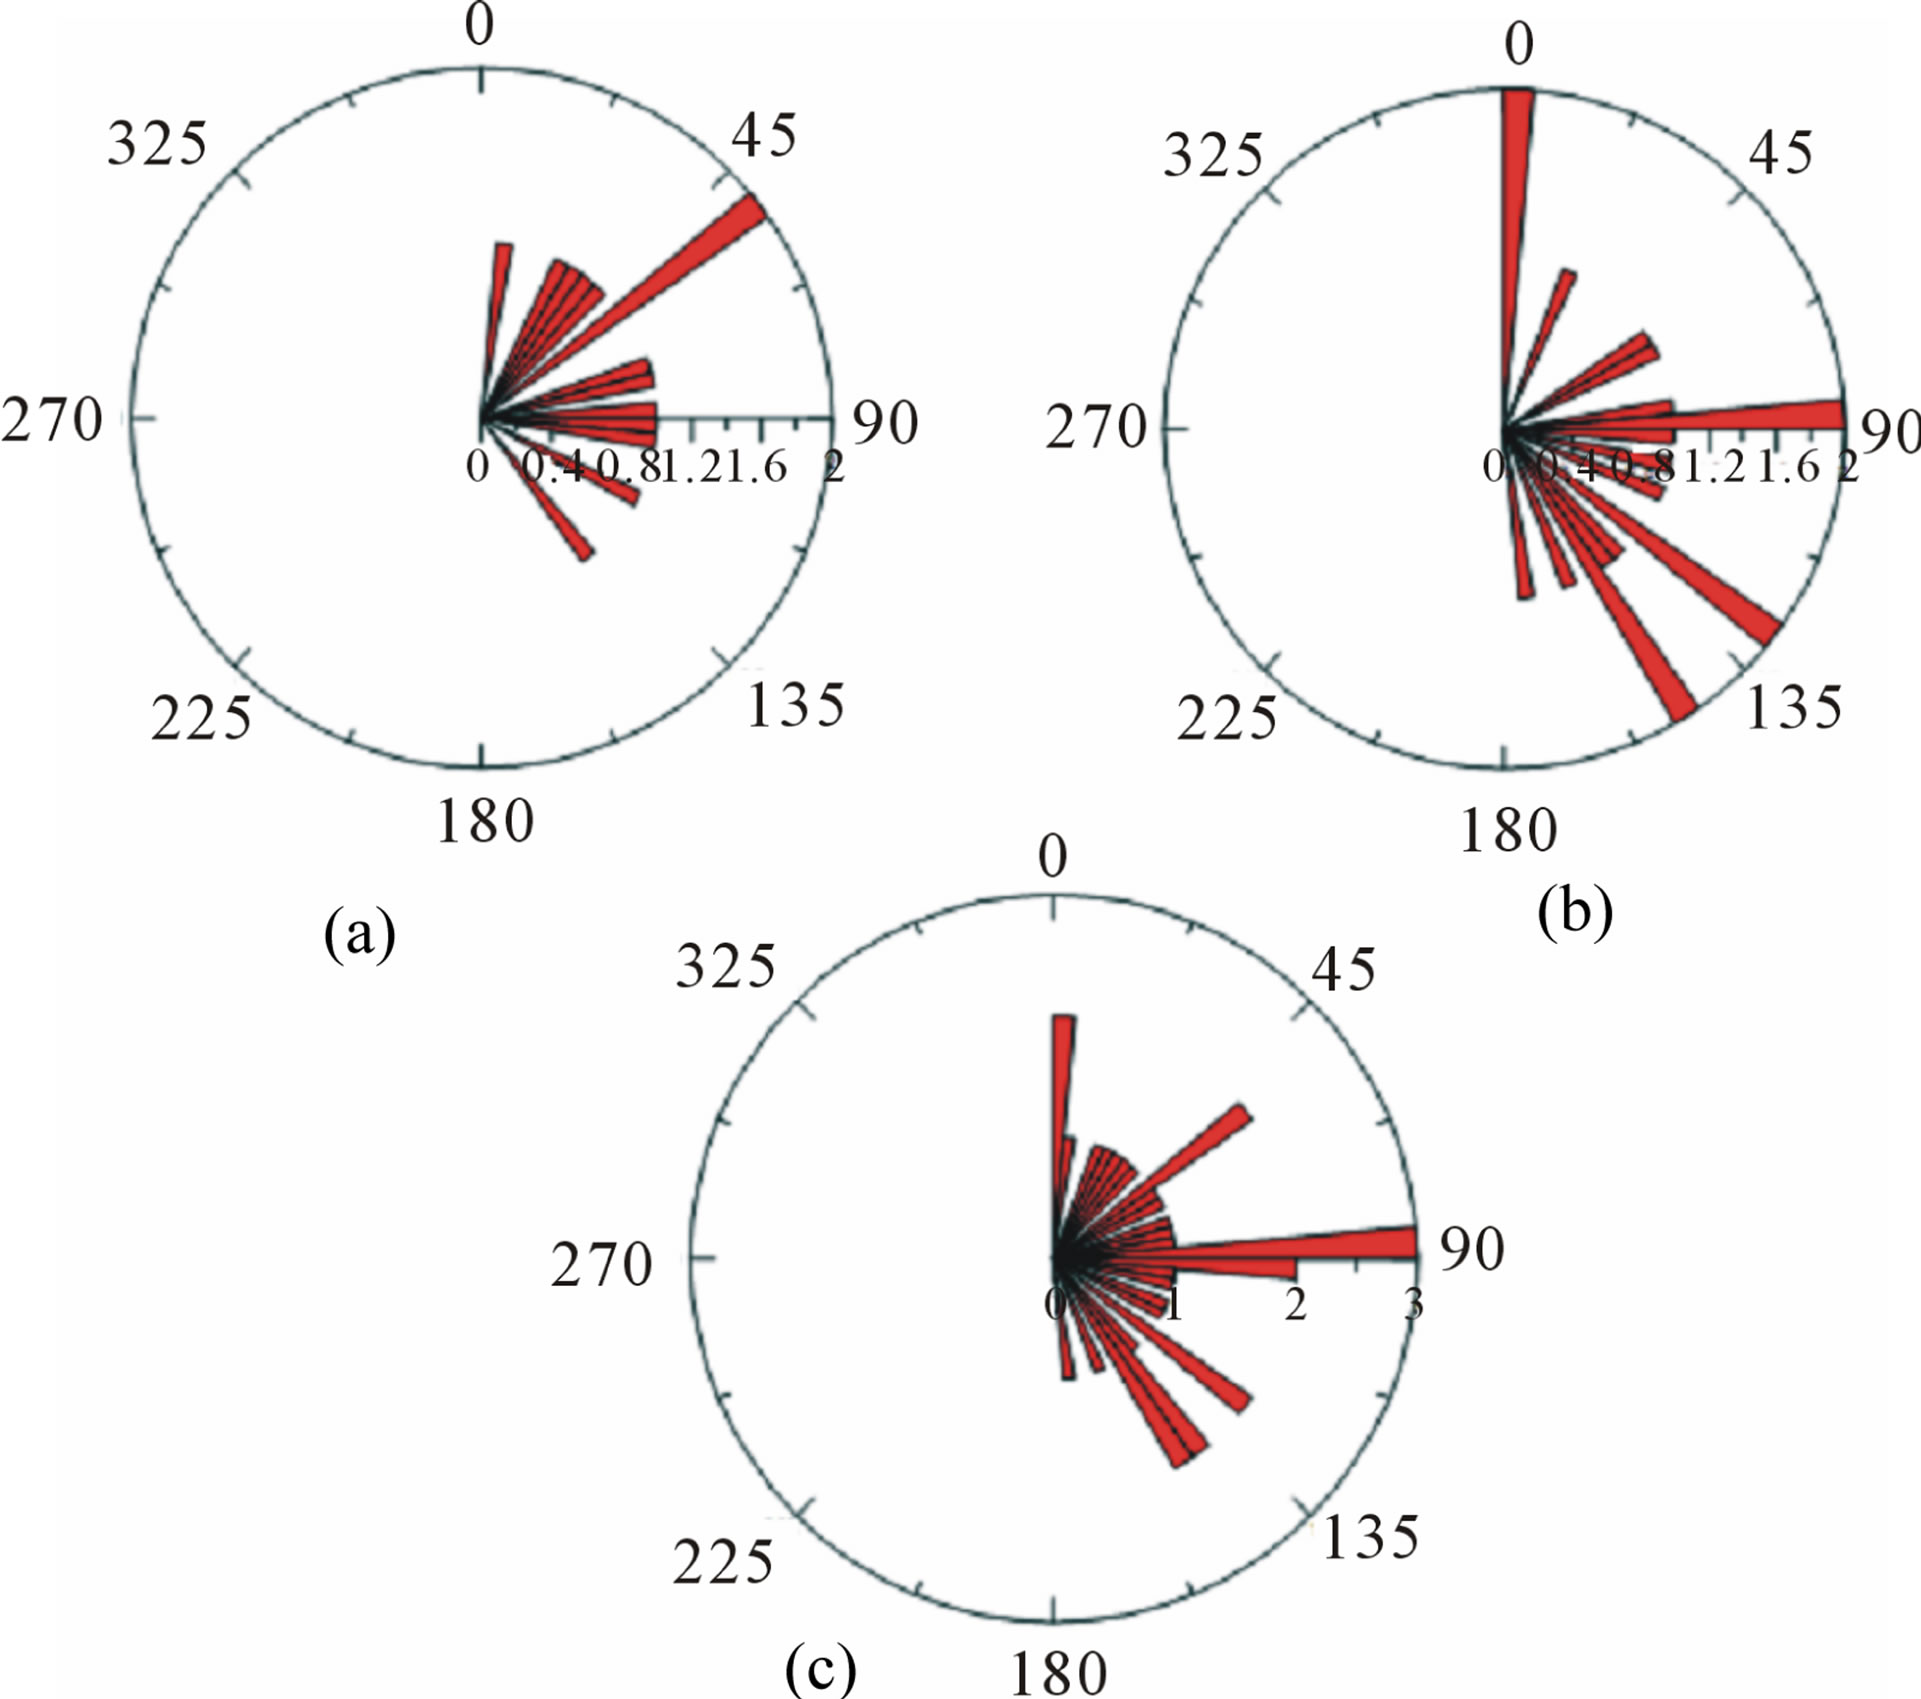 delineation of lineaments in south cameroon  central africa  using gravity data